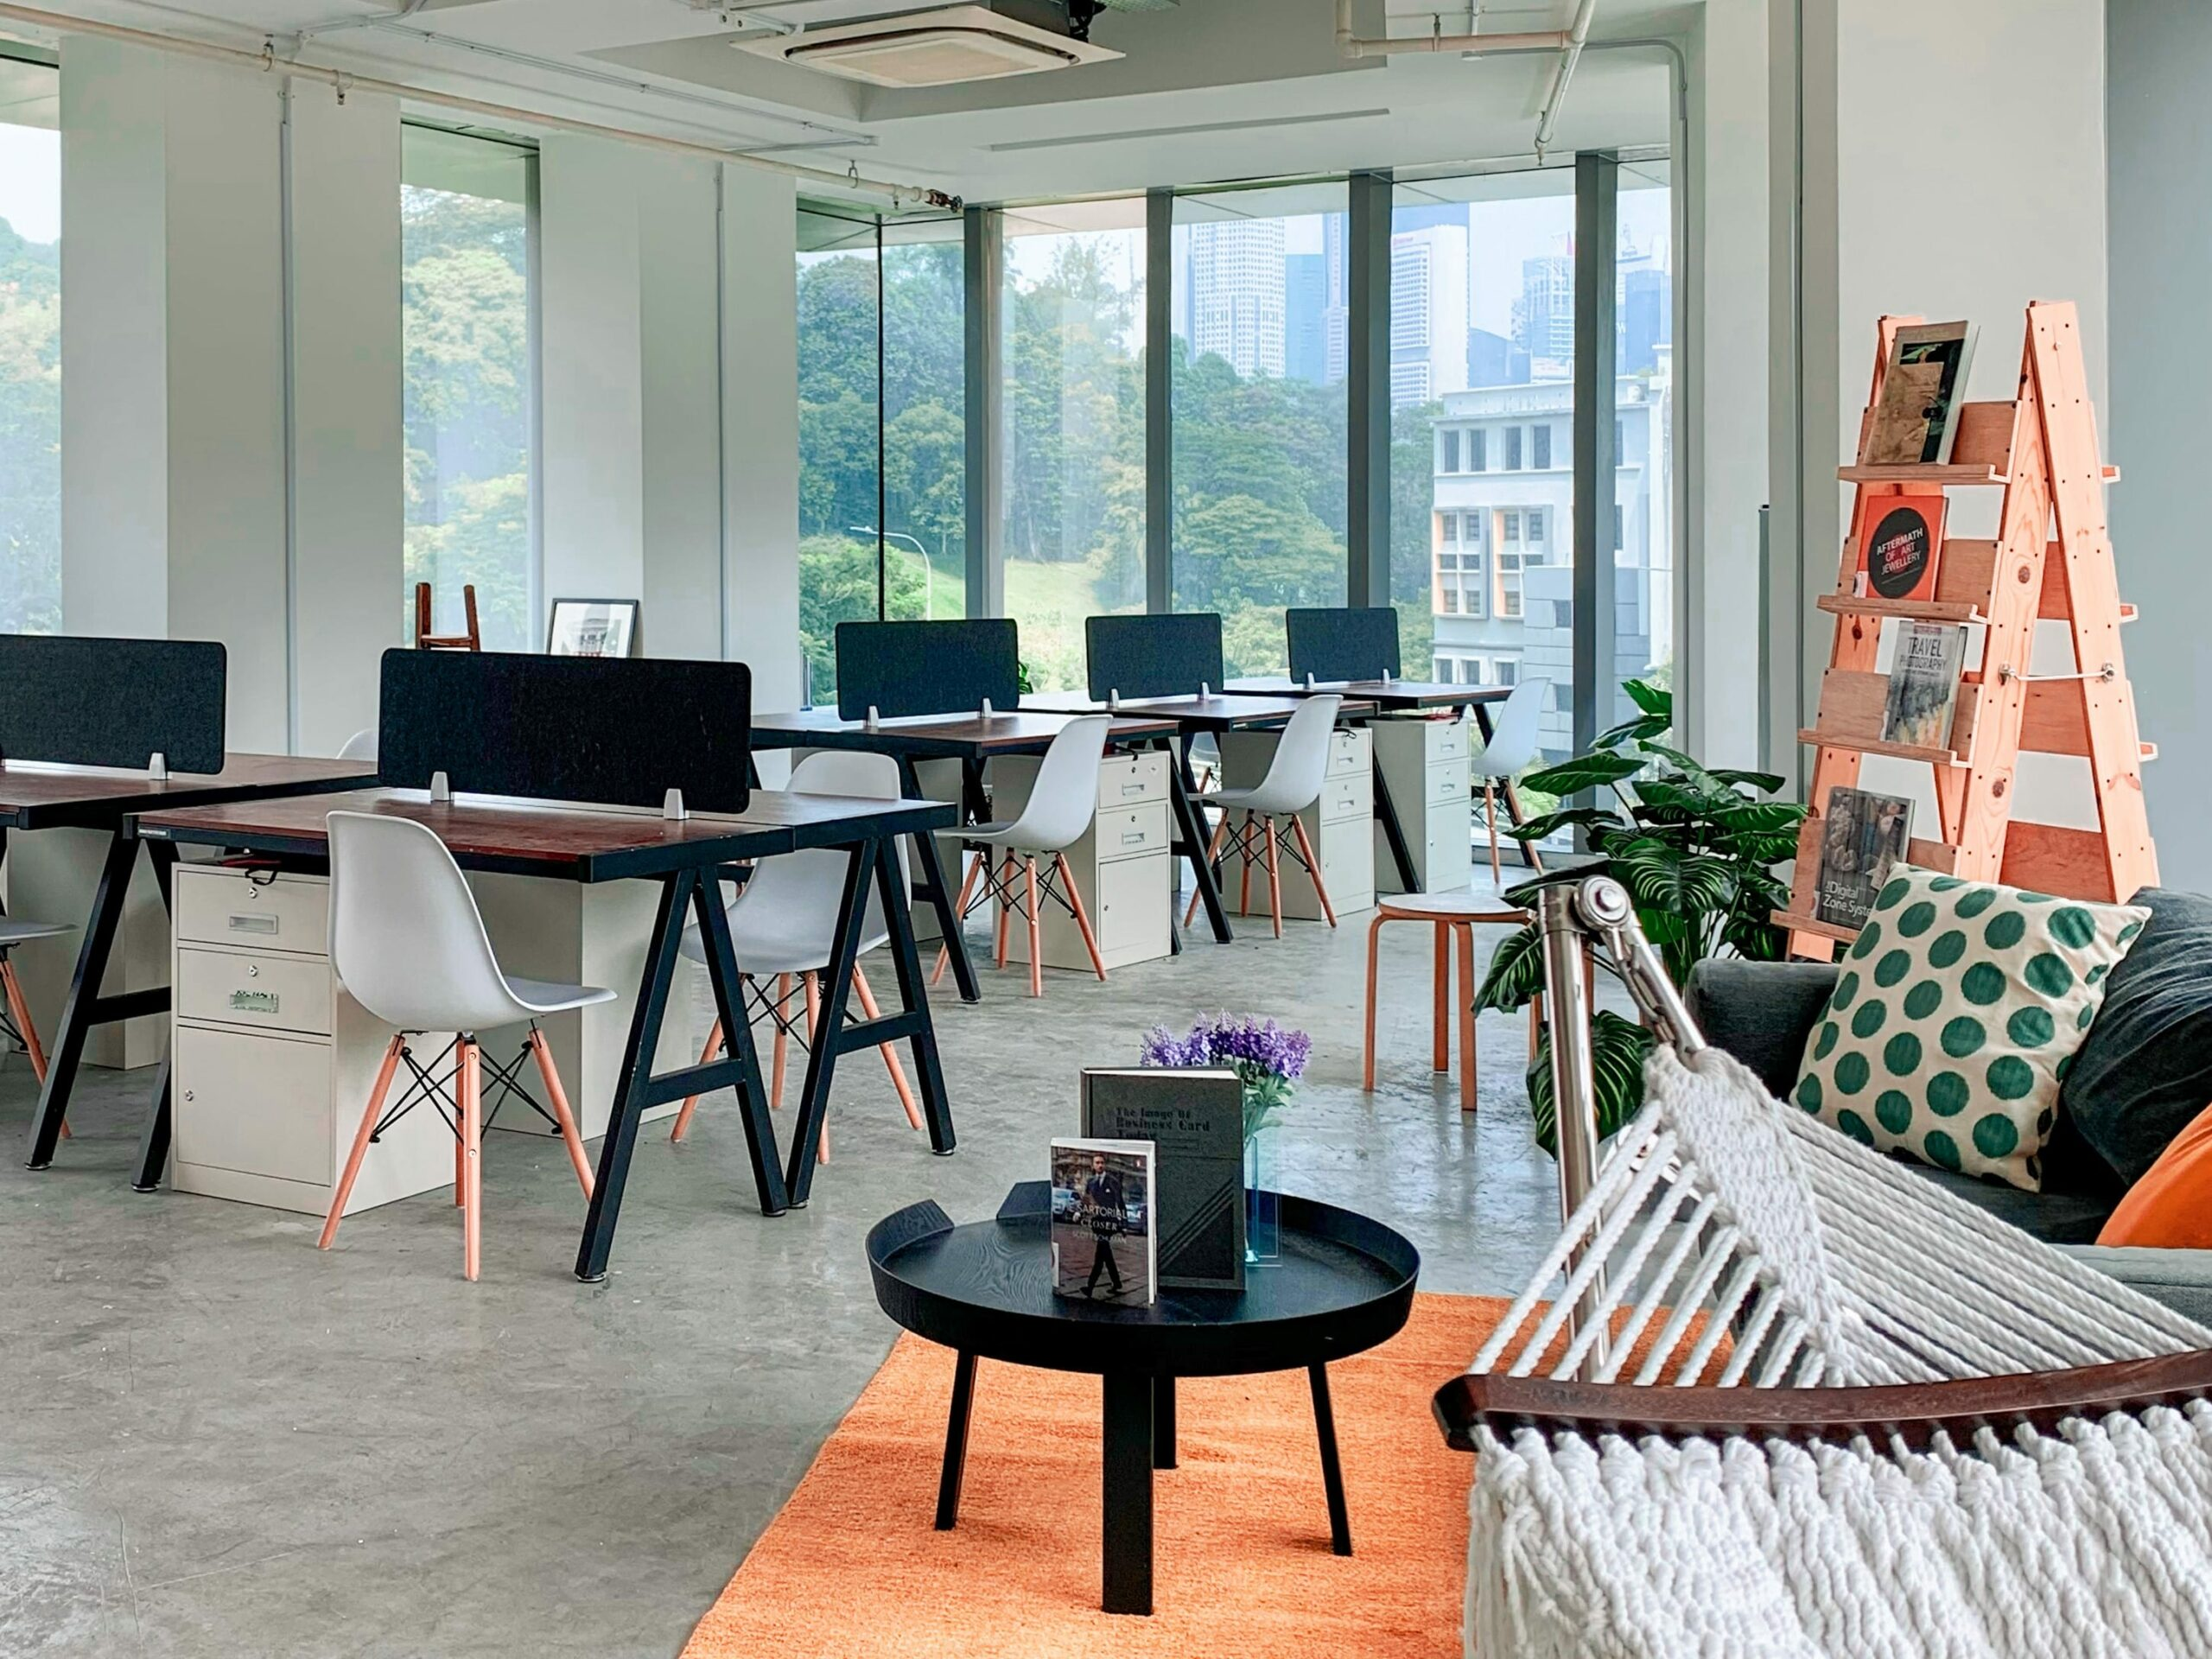 MOX @ Oxley Rise: A Co-making Hub For Creatives